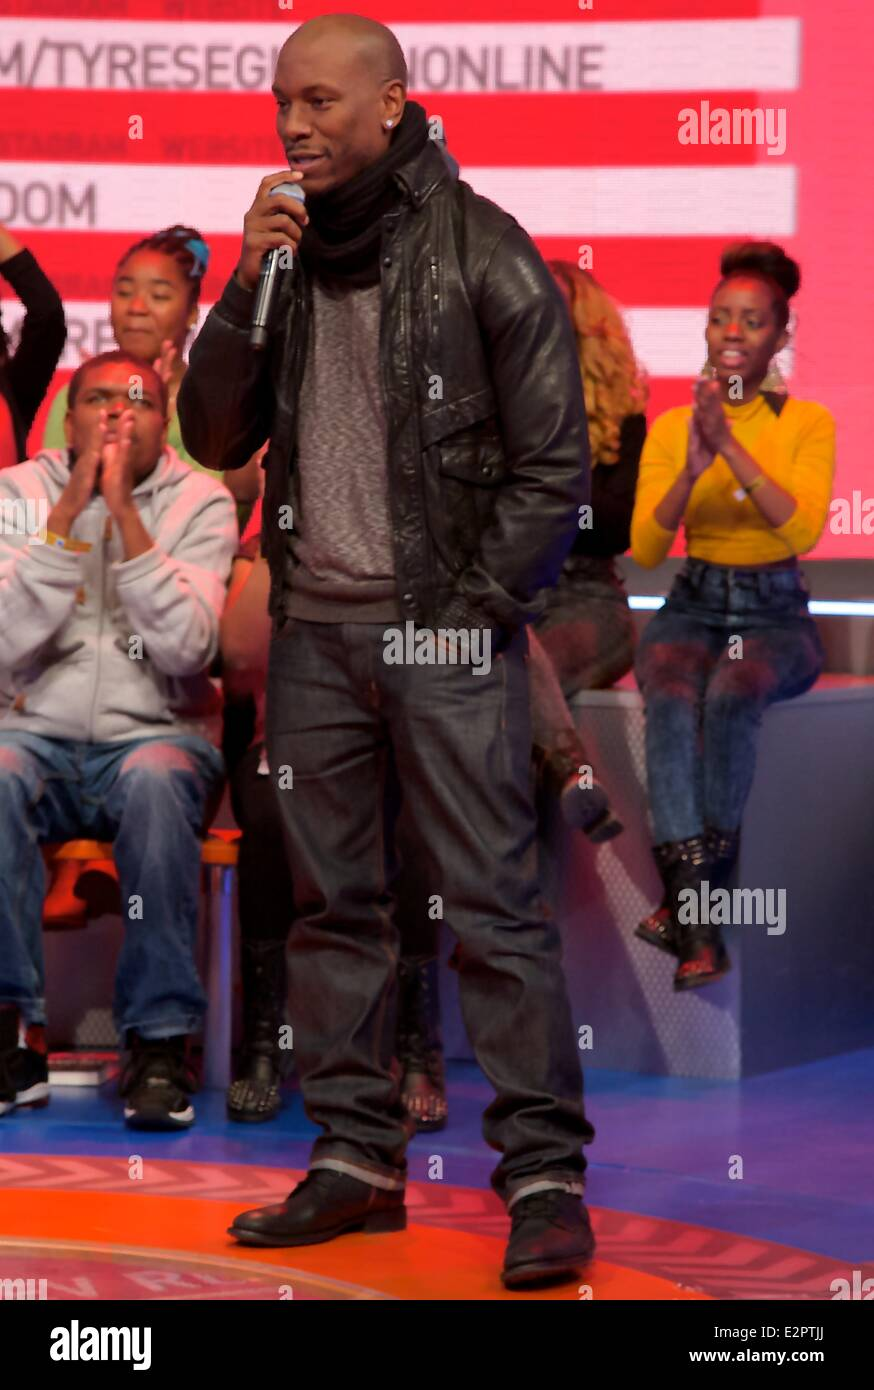 Tyrese Gibson and Rev Run Simmons of Run DMC visit the 106 & Park CBS BET Studios.  When: 04 Feb 2013 - Stock Image